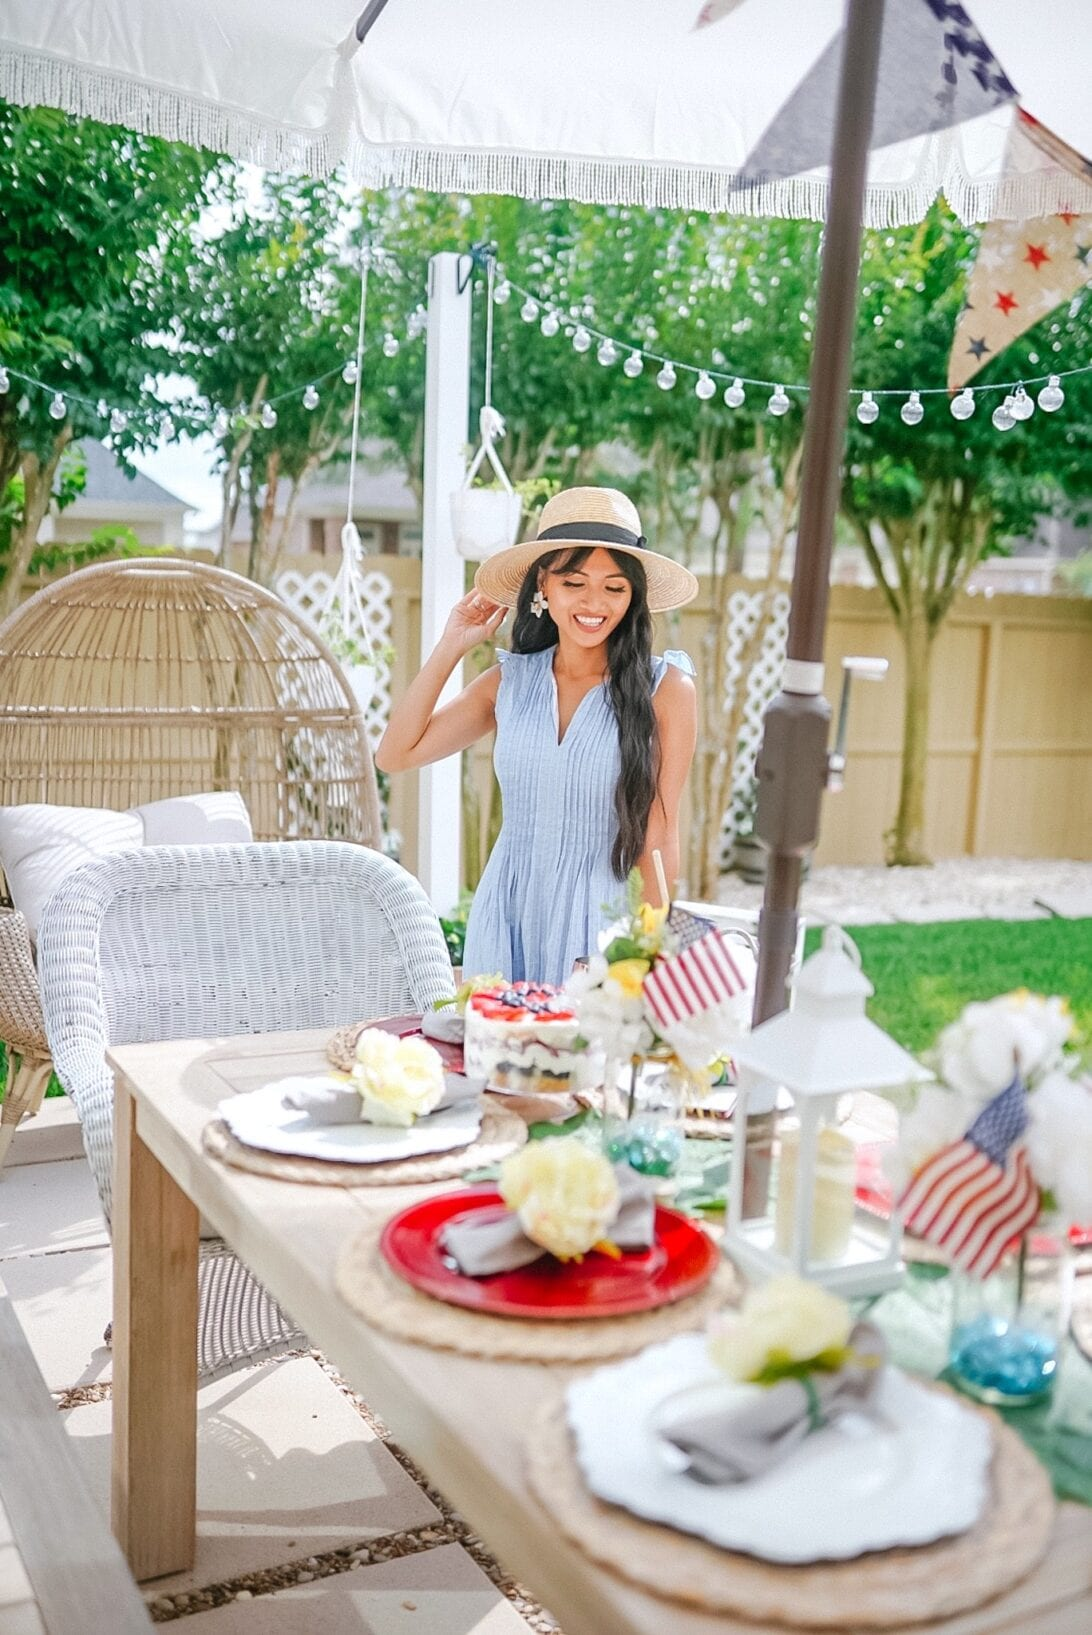 patriotic themed tablescape, patio decor, American flags, red and white chargers